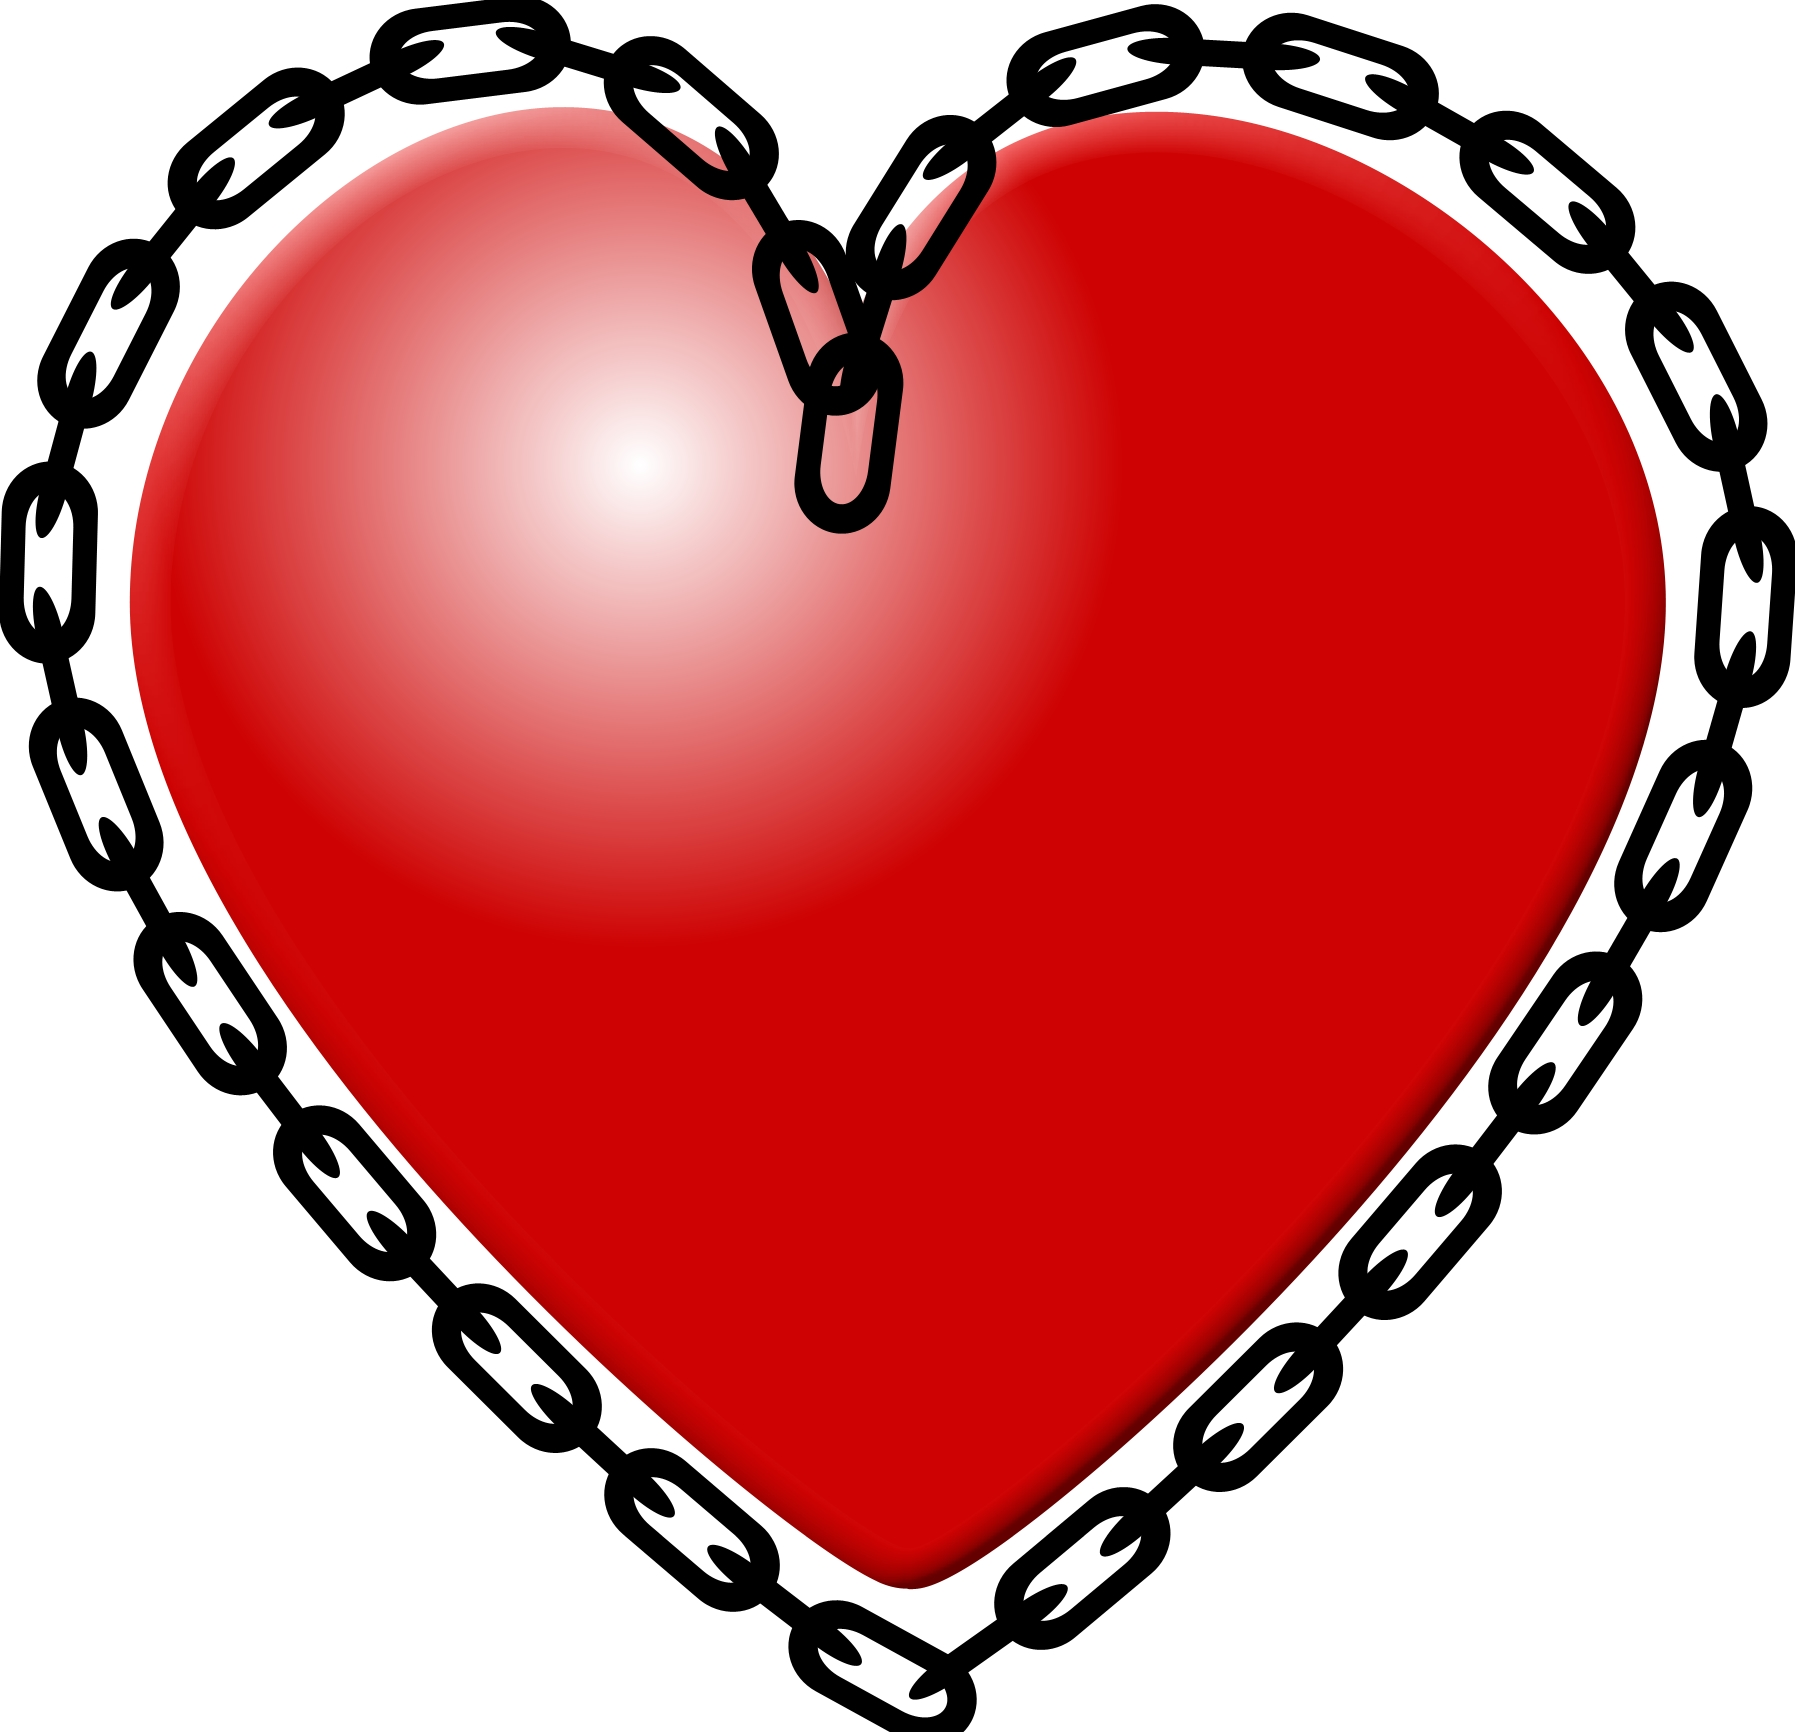 [Red Heart -- LEGAL USE OF THIS PHOTO LICENSED AND SECURED VIA DREAMSTIME - 2014]